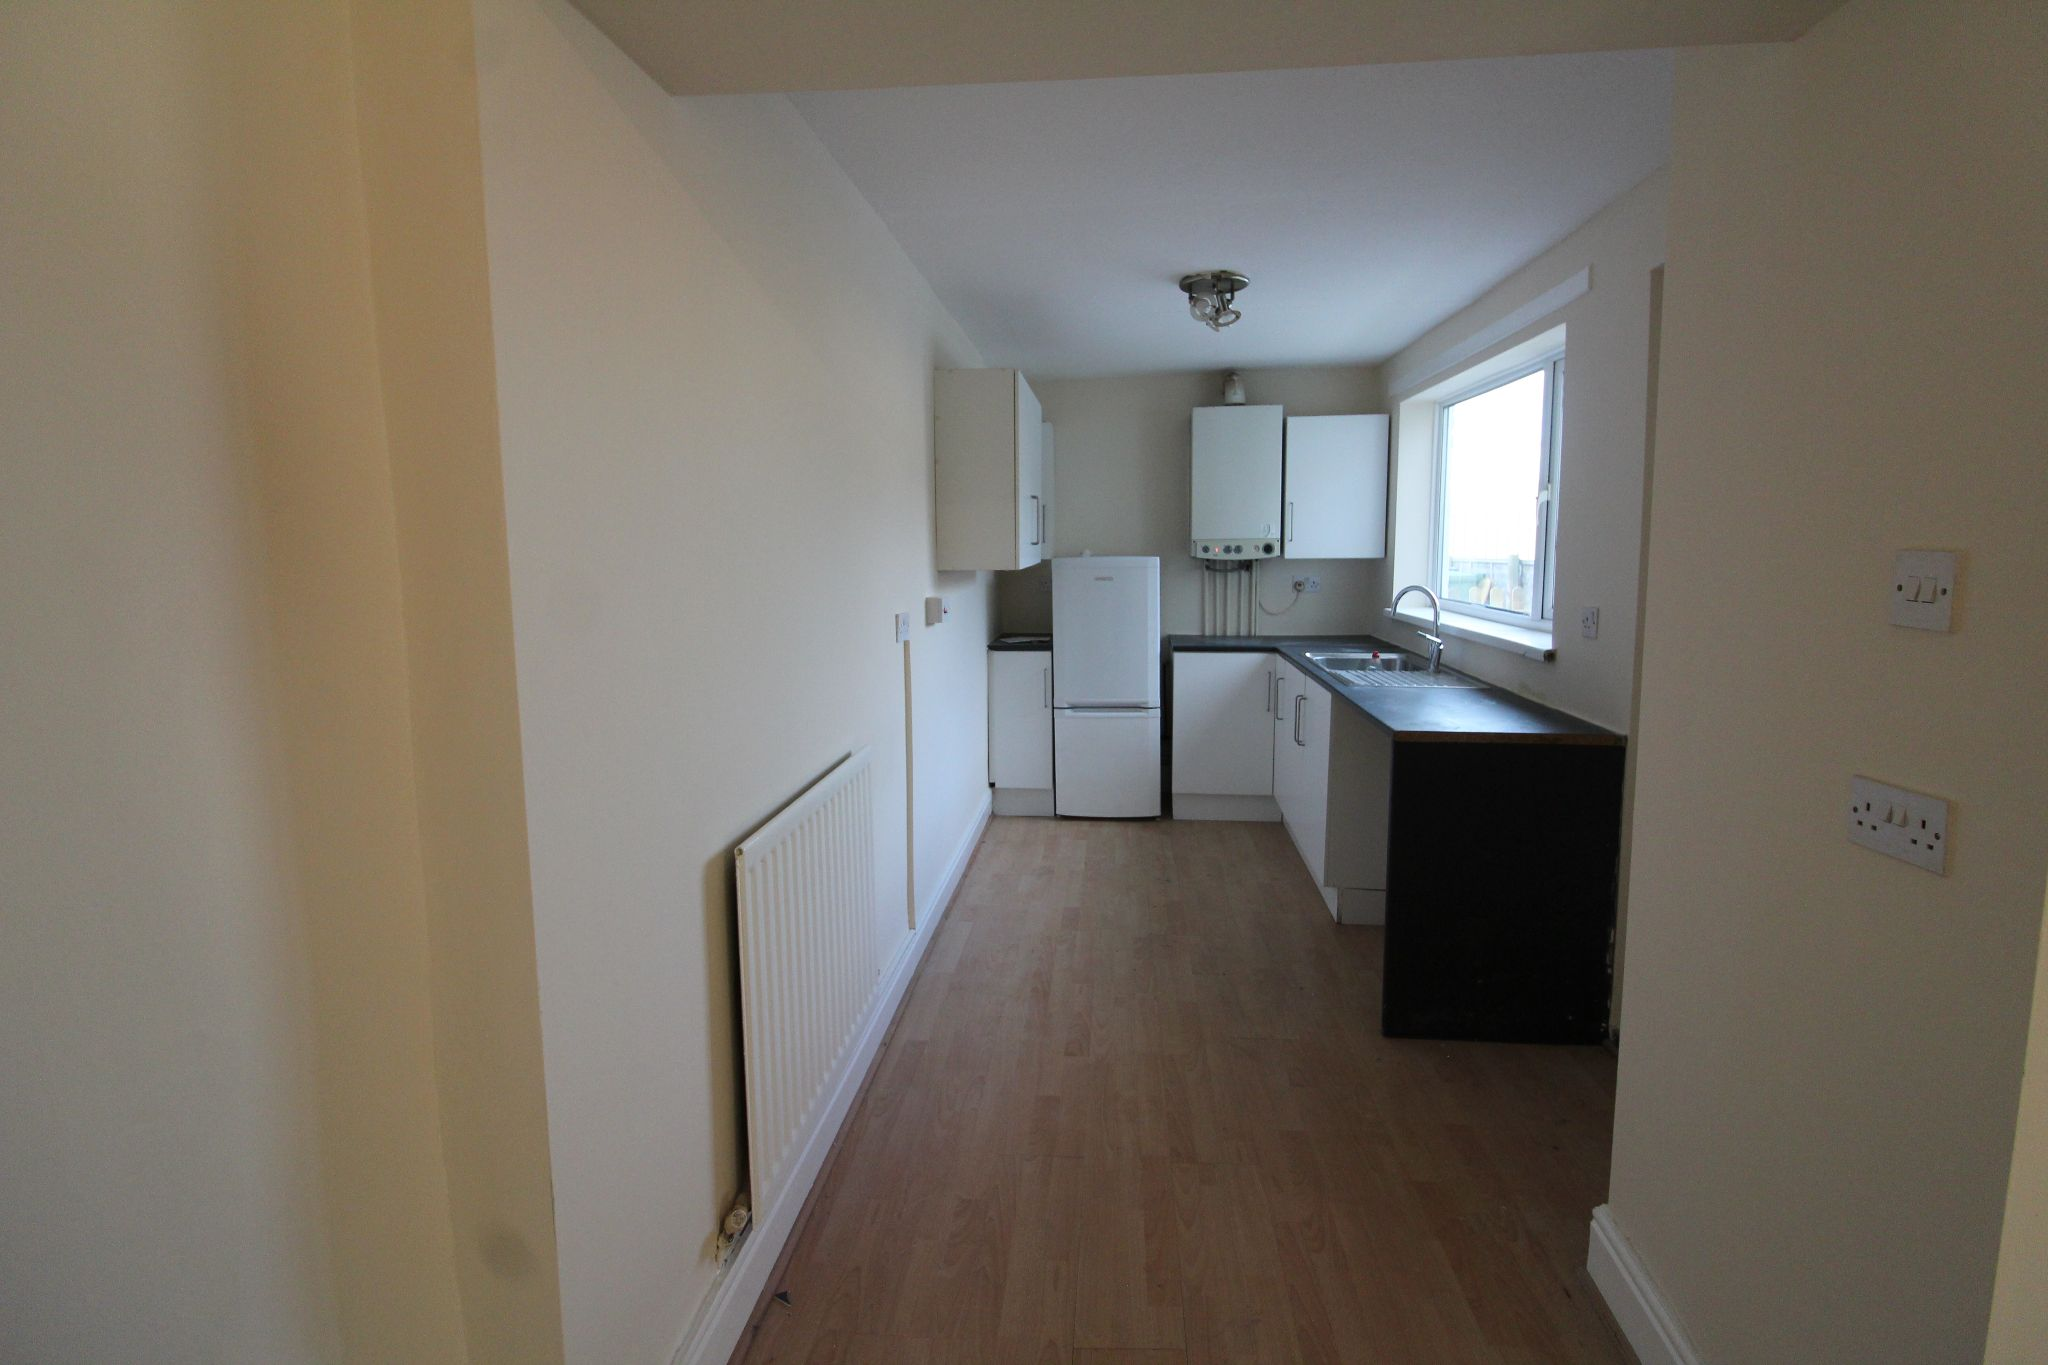 2 bedroom mid terraced house To Let in Bishop Auckland - Photograph 5.